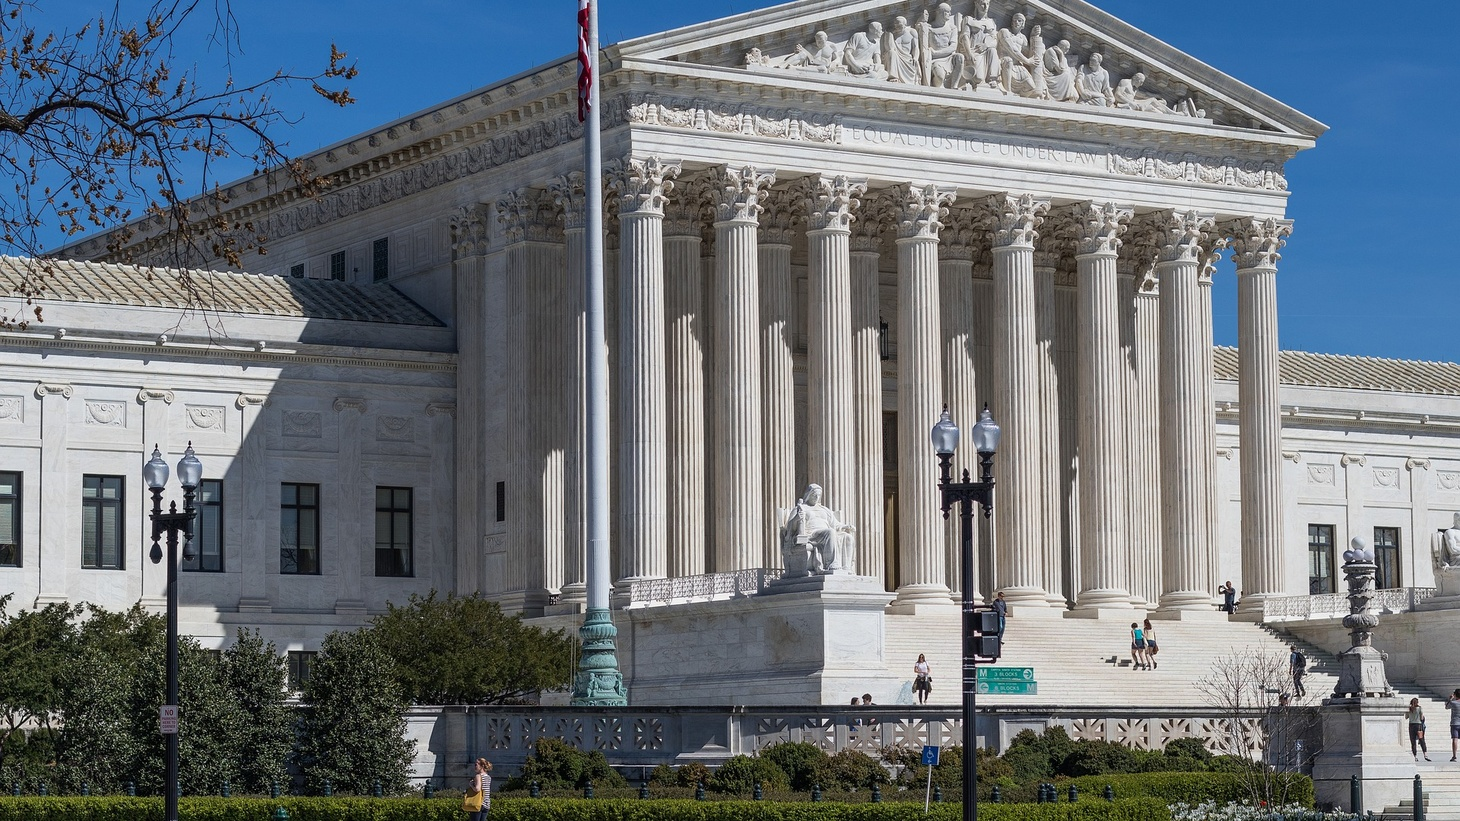 The U.S. Supreme Court struck down a Louisiana law that would have required doctors performing abortions to have admitting priviledges at a local hospital.